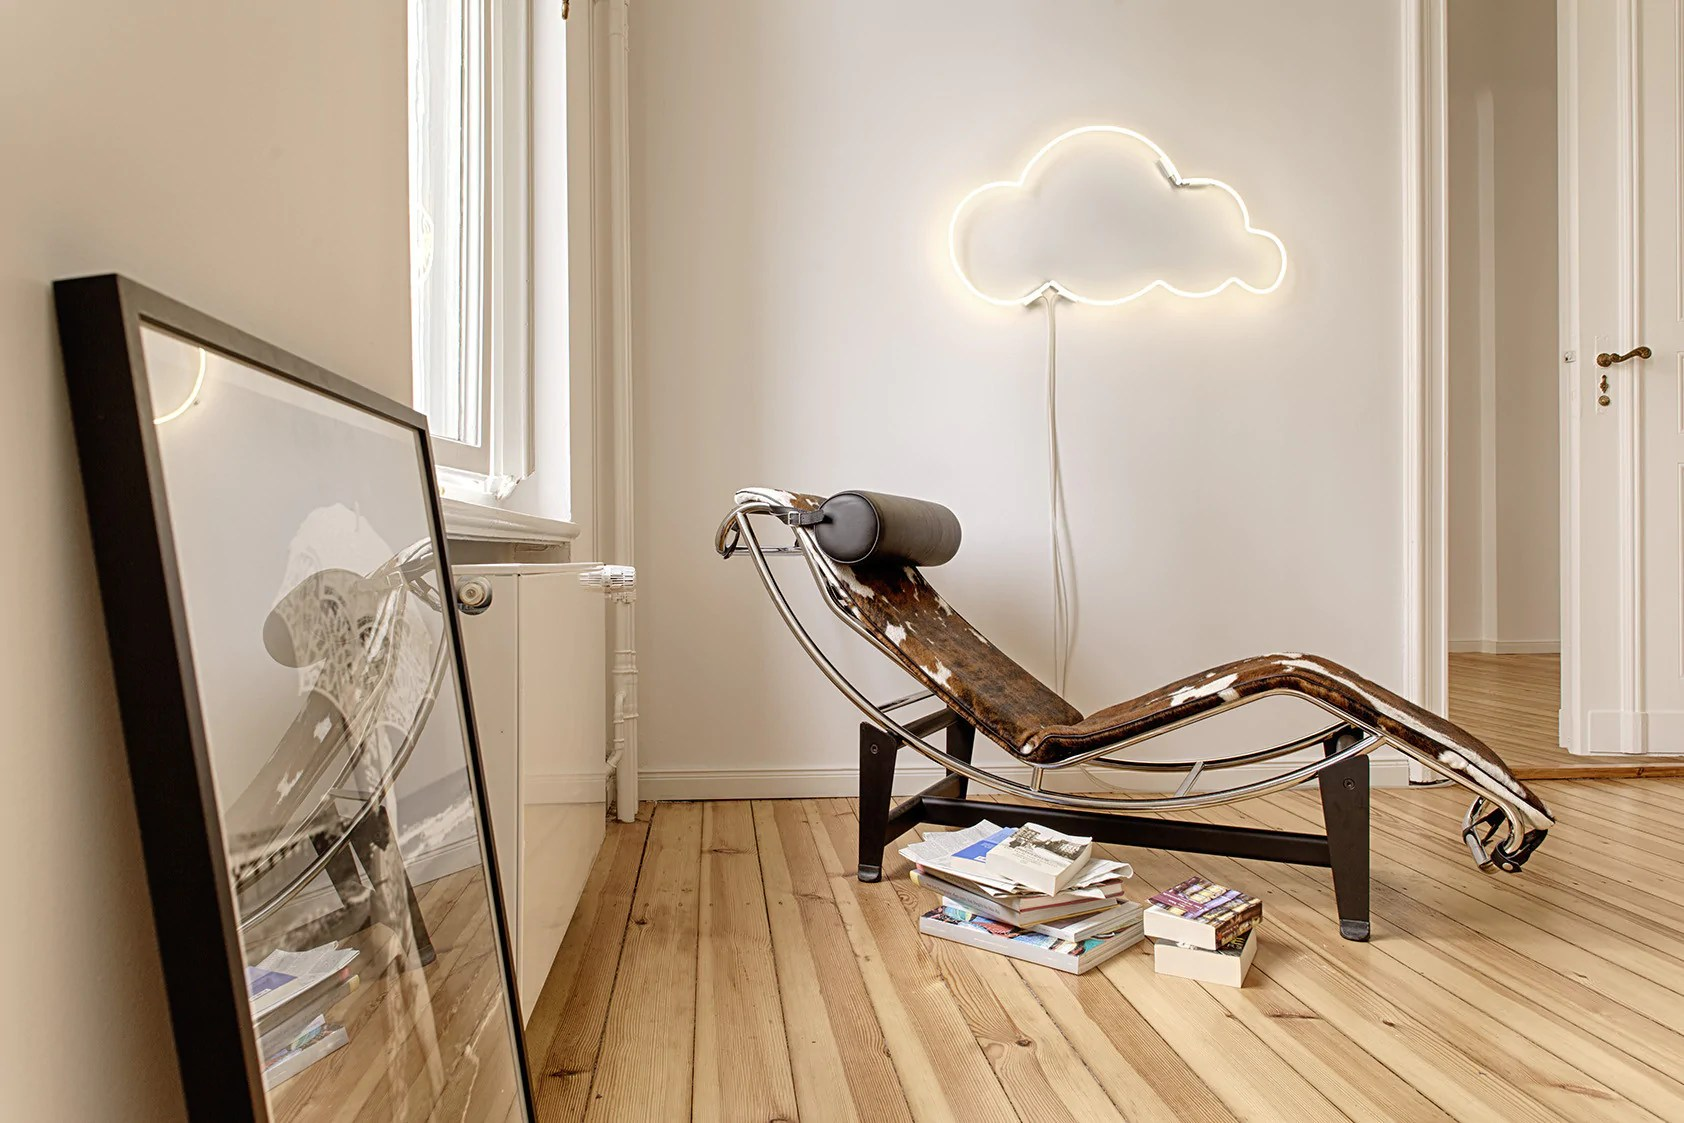 Sygns Cloud 9 | Neon Decoration By Sygns